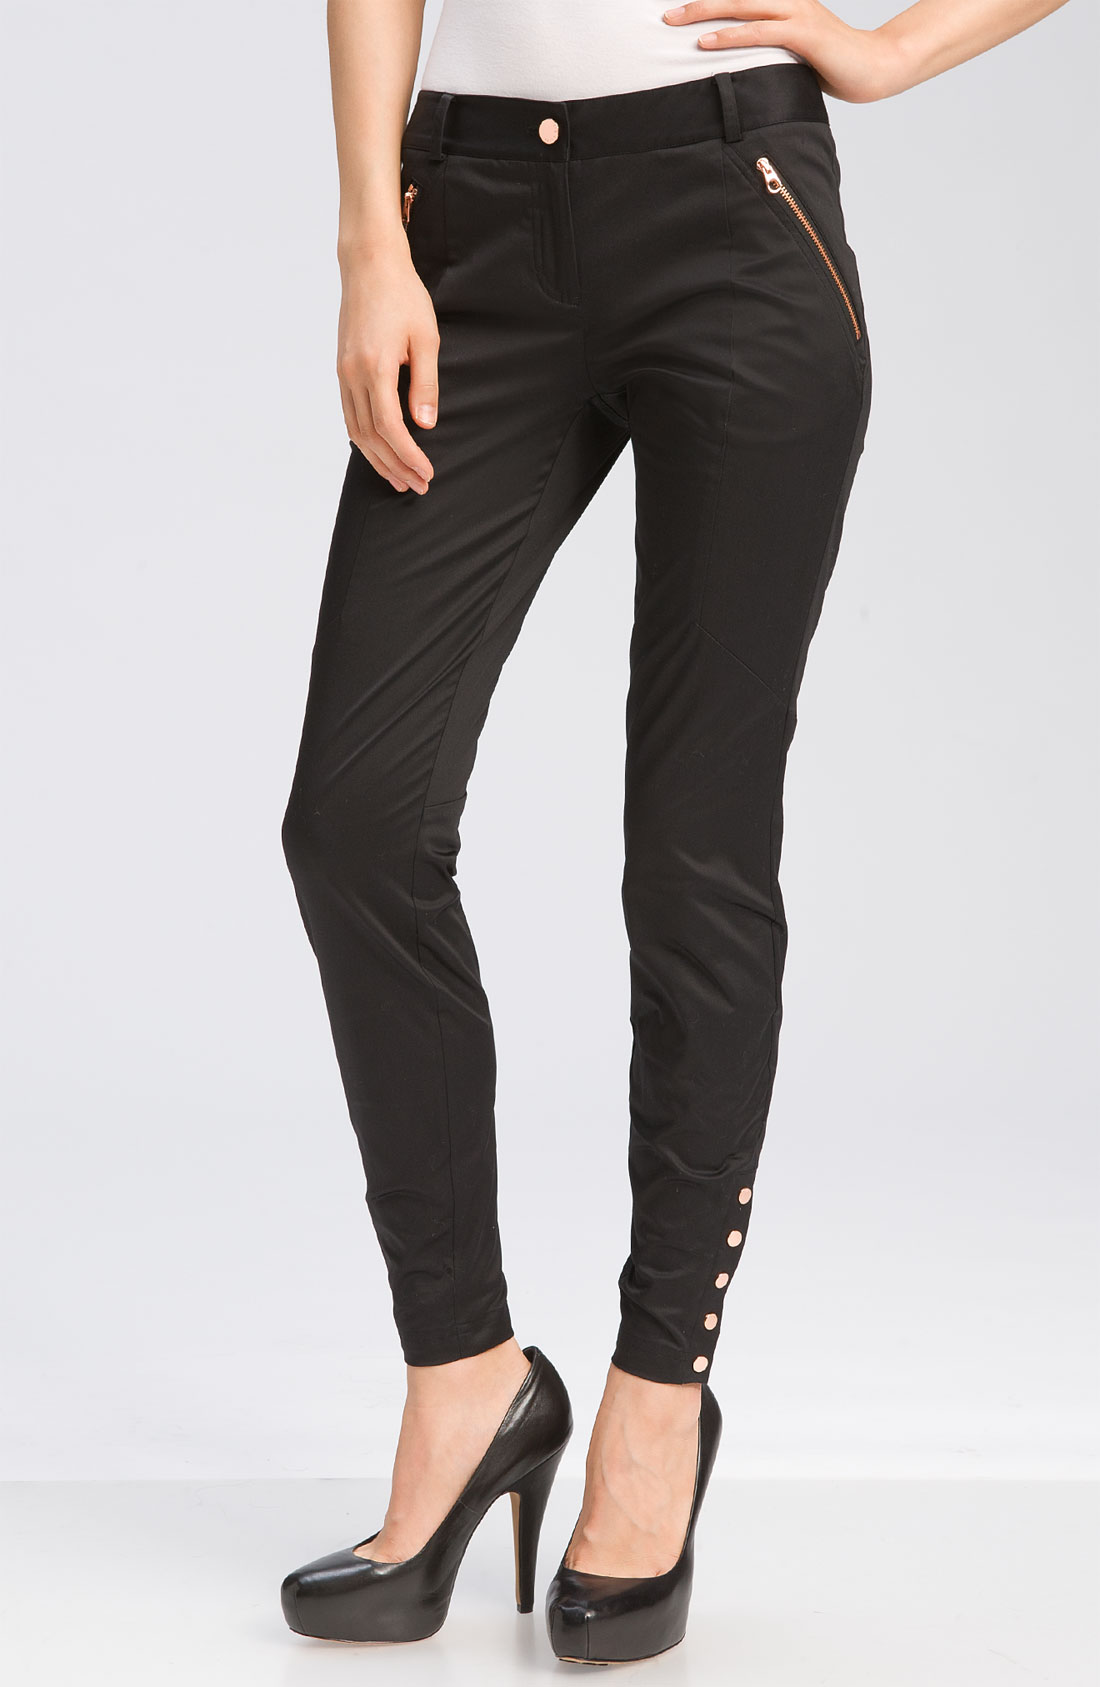 Whether they're for an active day of exercising or a night spent in comfort at home, sweat pants are a versatile necessity. This sleek pair comes in all-black, with two zipper pockets at the waist, an elasticated hemline and a slim fit. Work in a matching hoodie and white sneakers to complete the athluxe style.